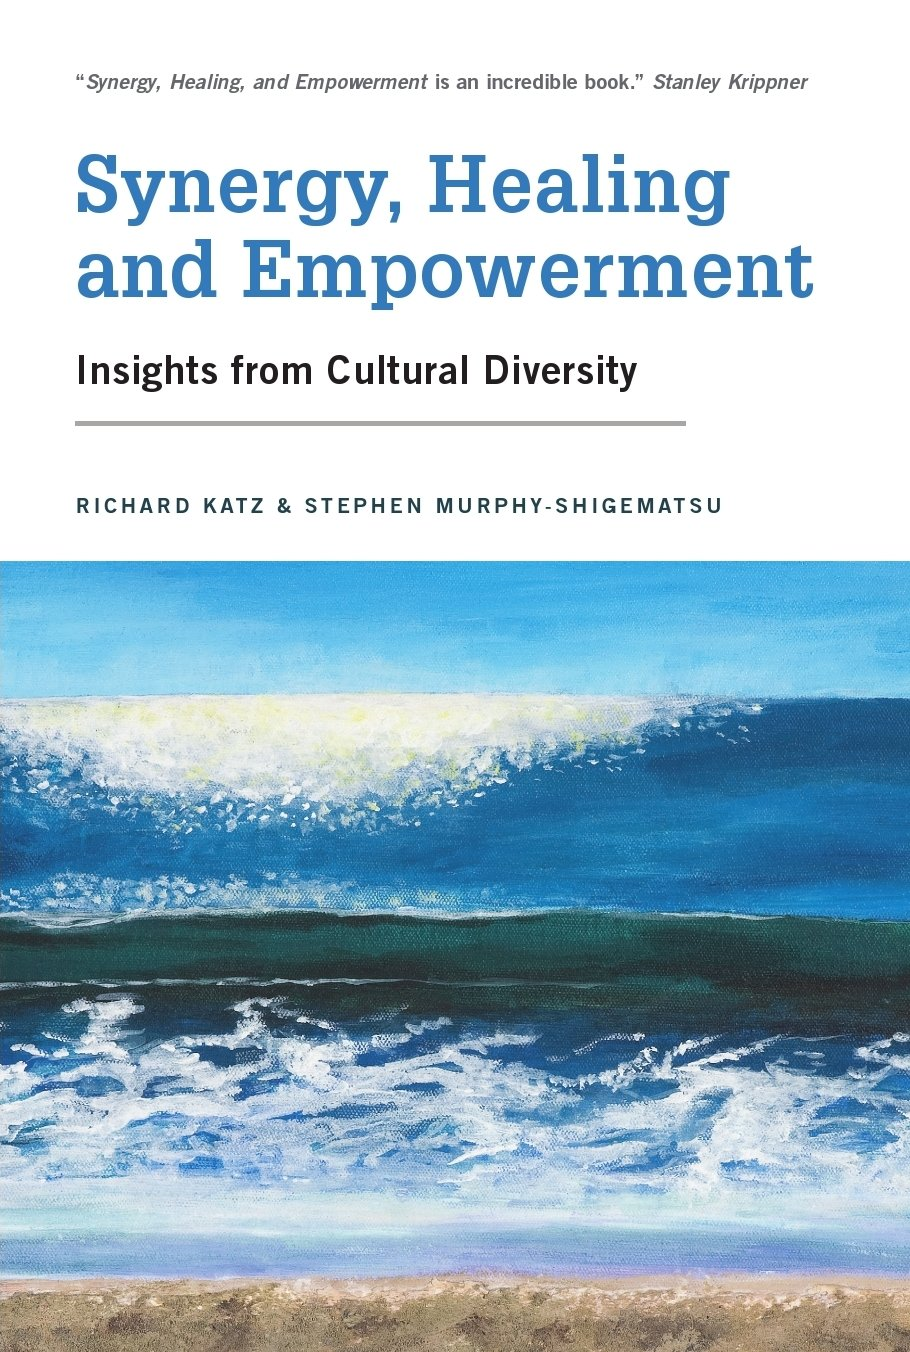 Synergy, Healing, and Empowerment: Insights from Cultural Diversity